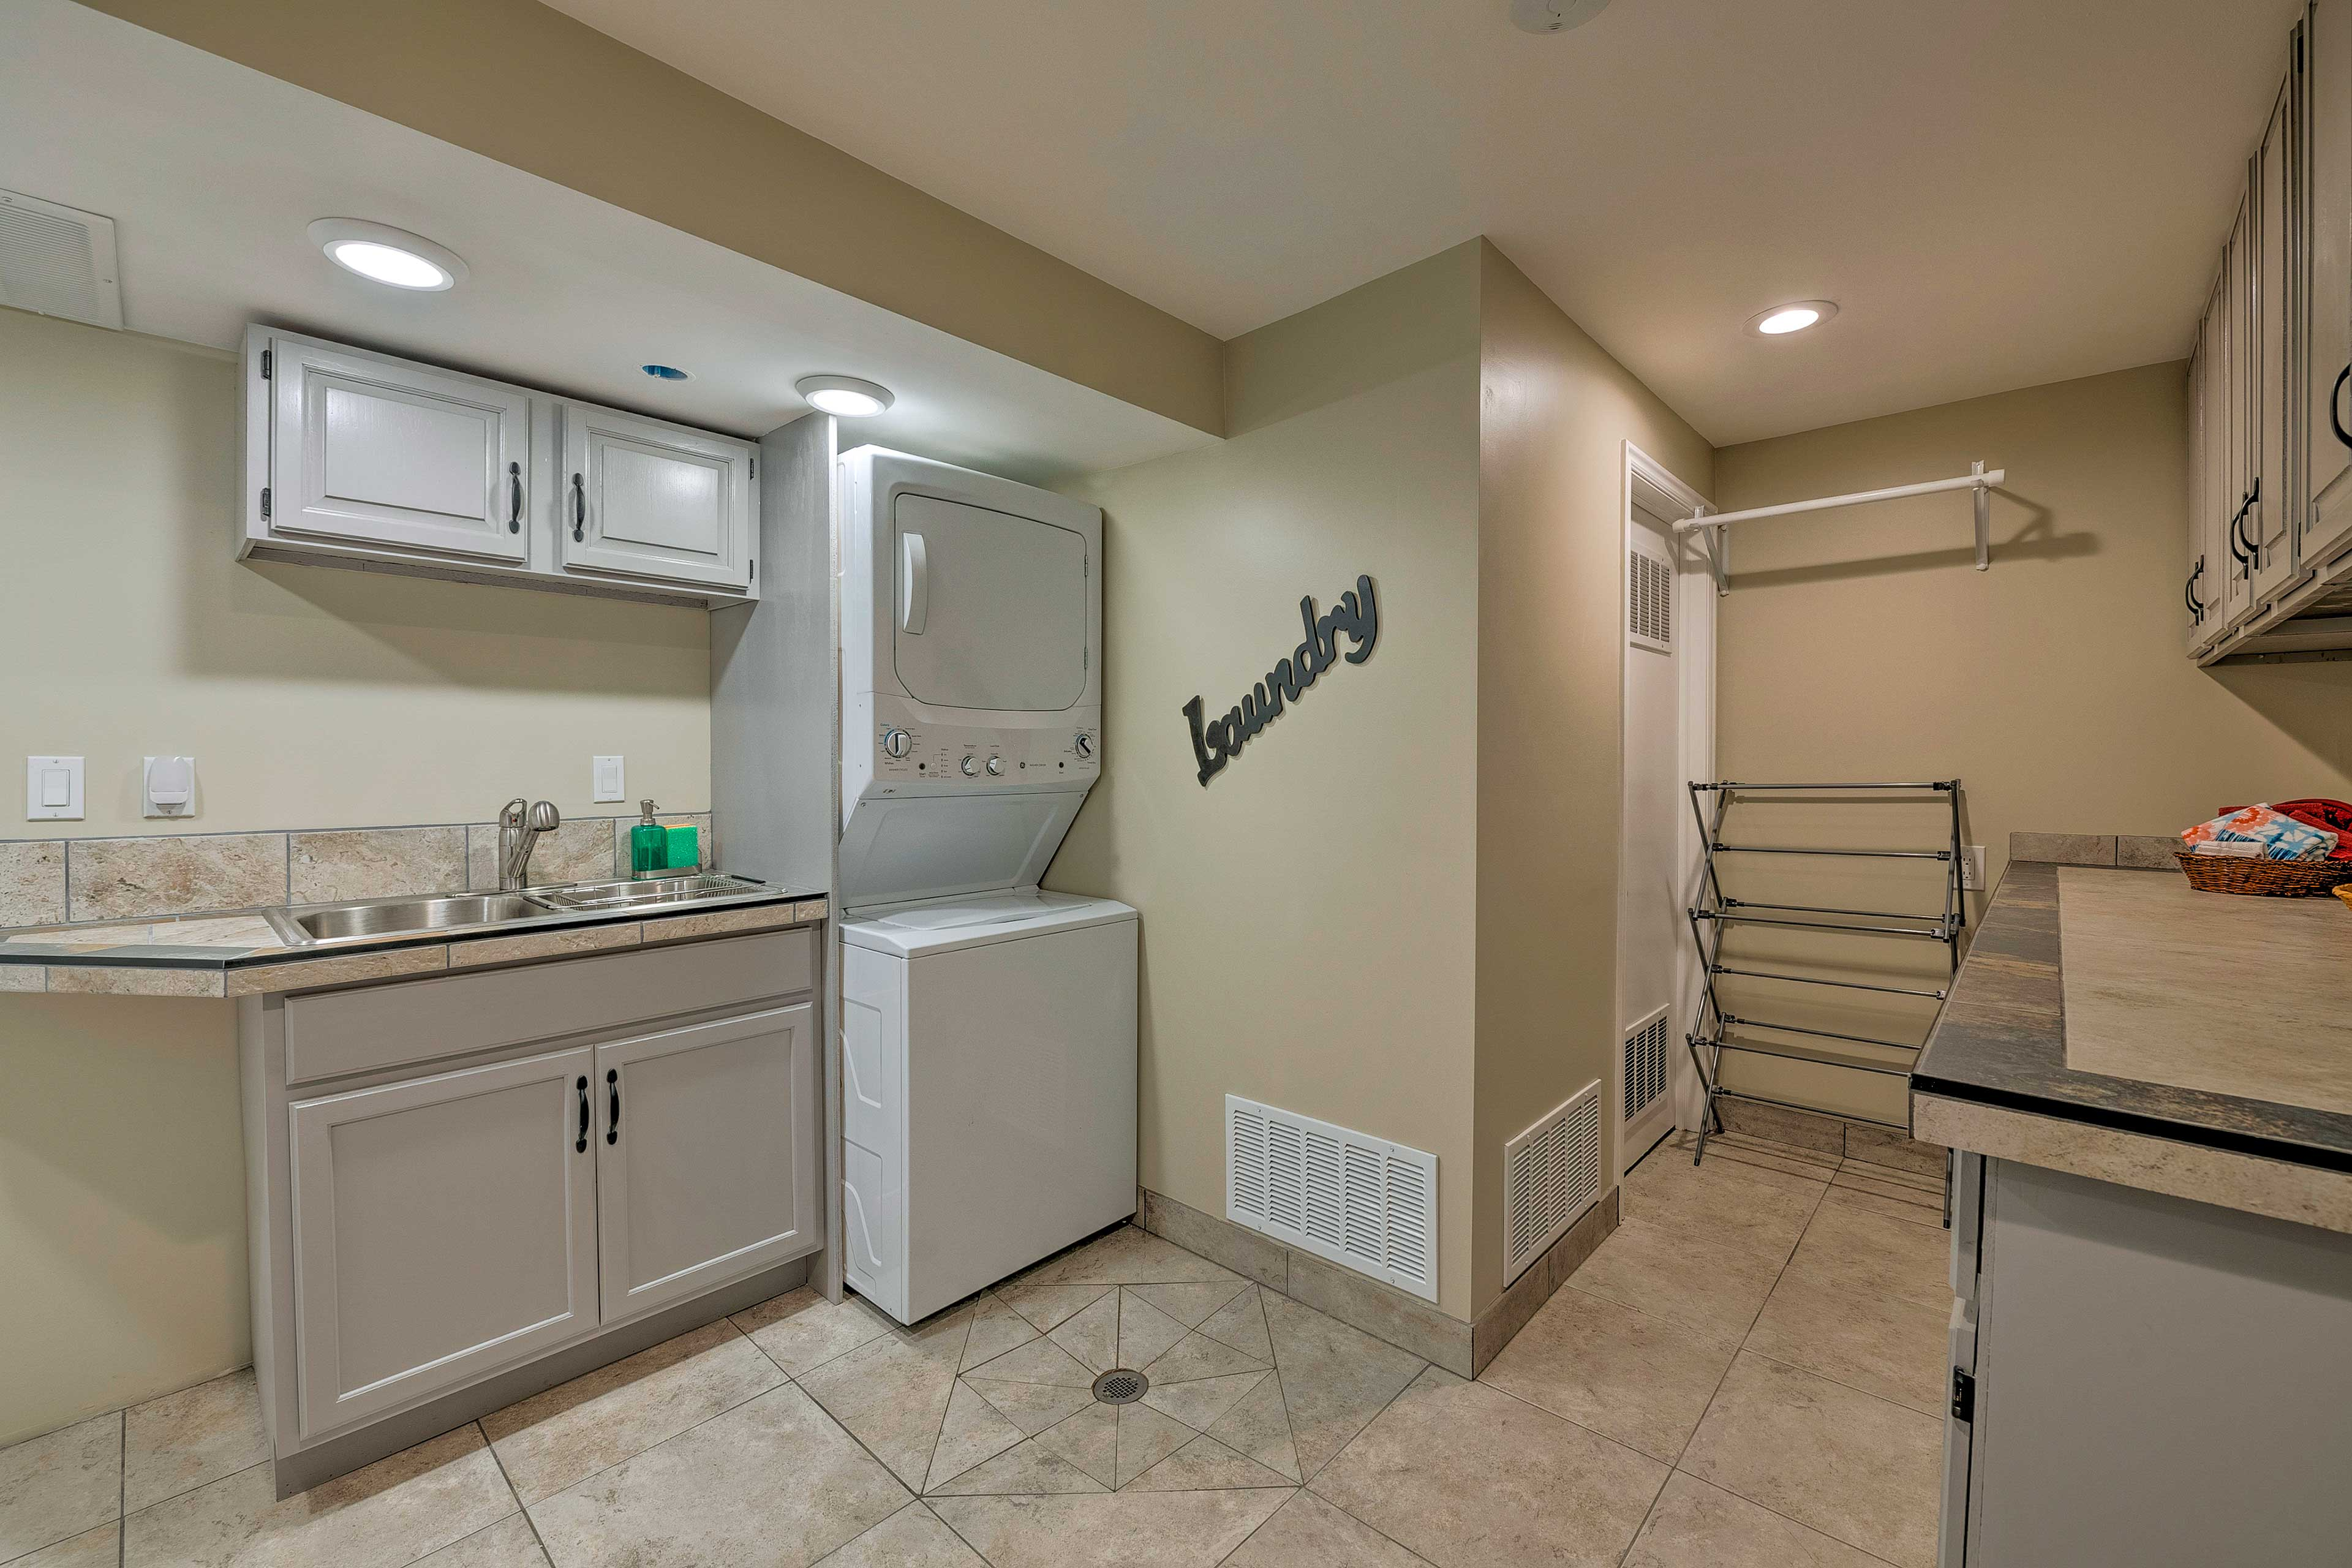 There is even a washer and dryer for you to use during your stay.